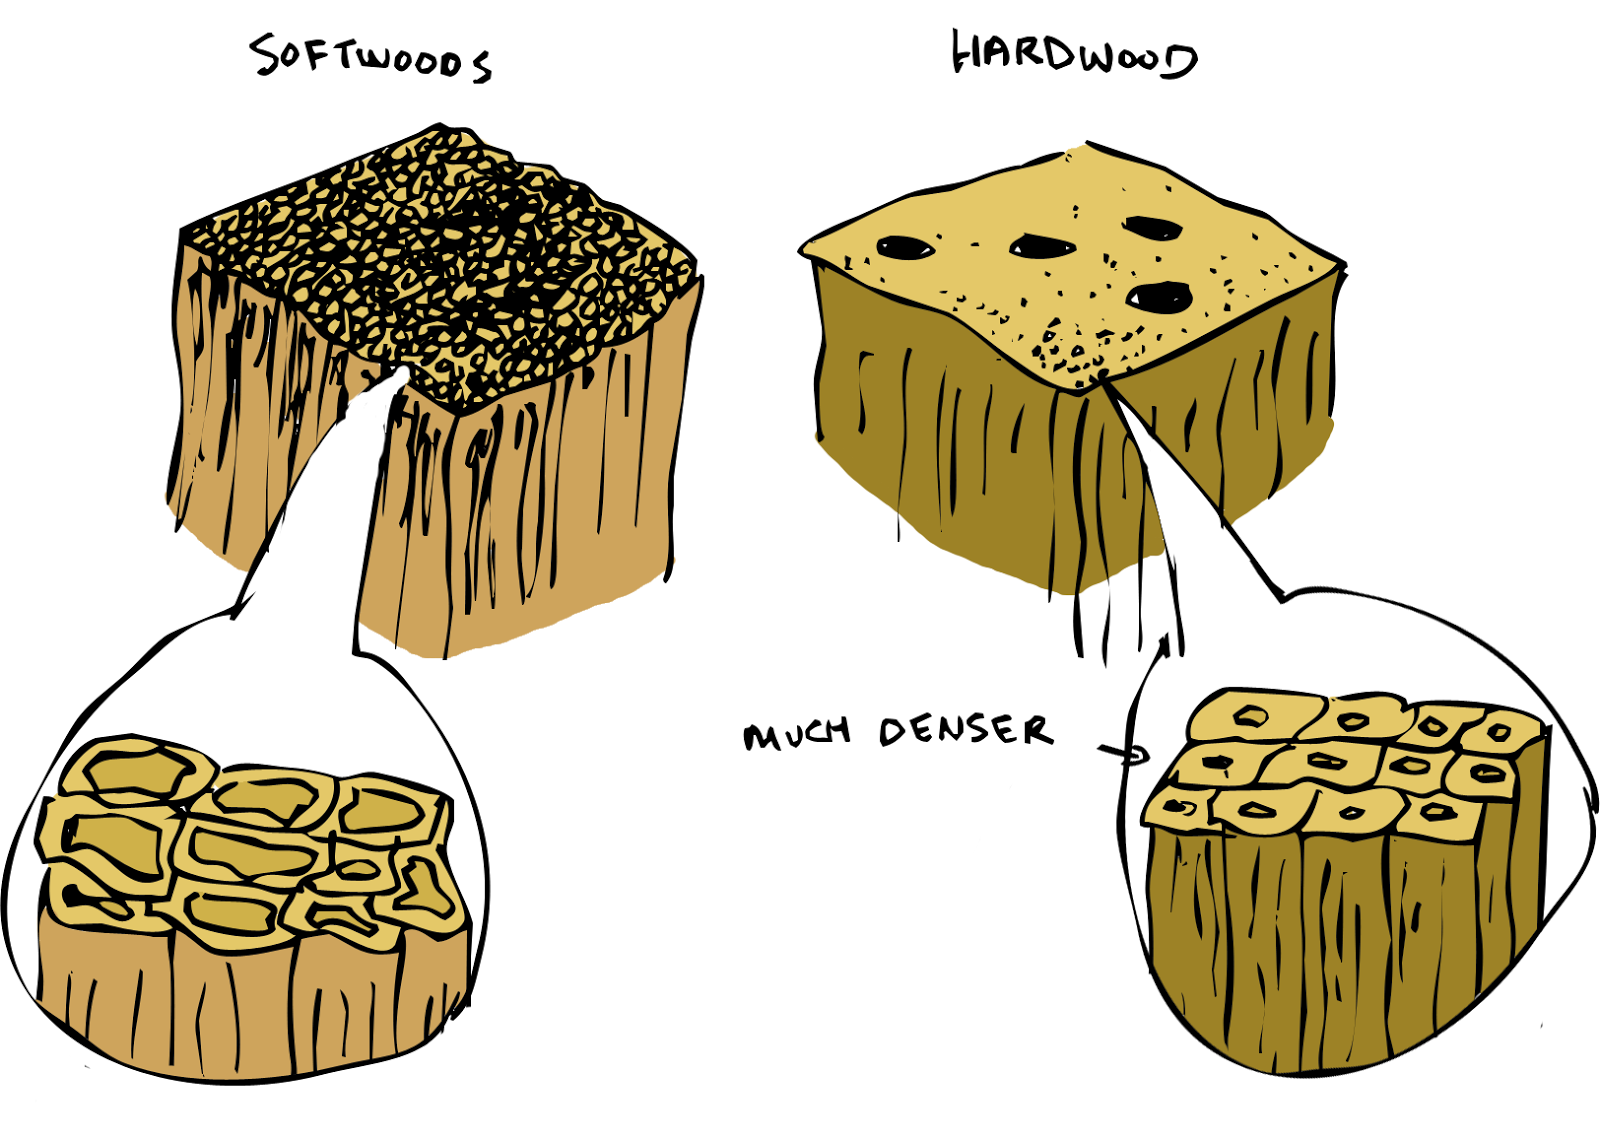 Hardwood Vs Softwood ~ Sketchy science burn baby the of a perfect